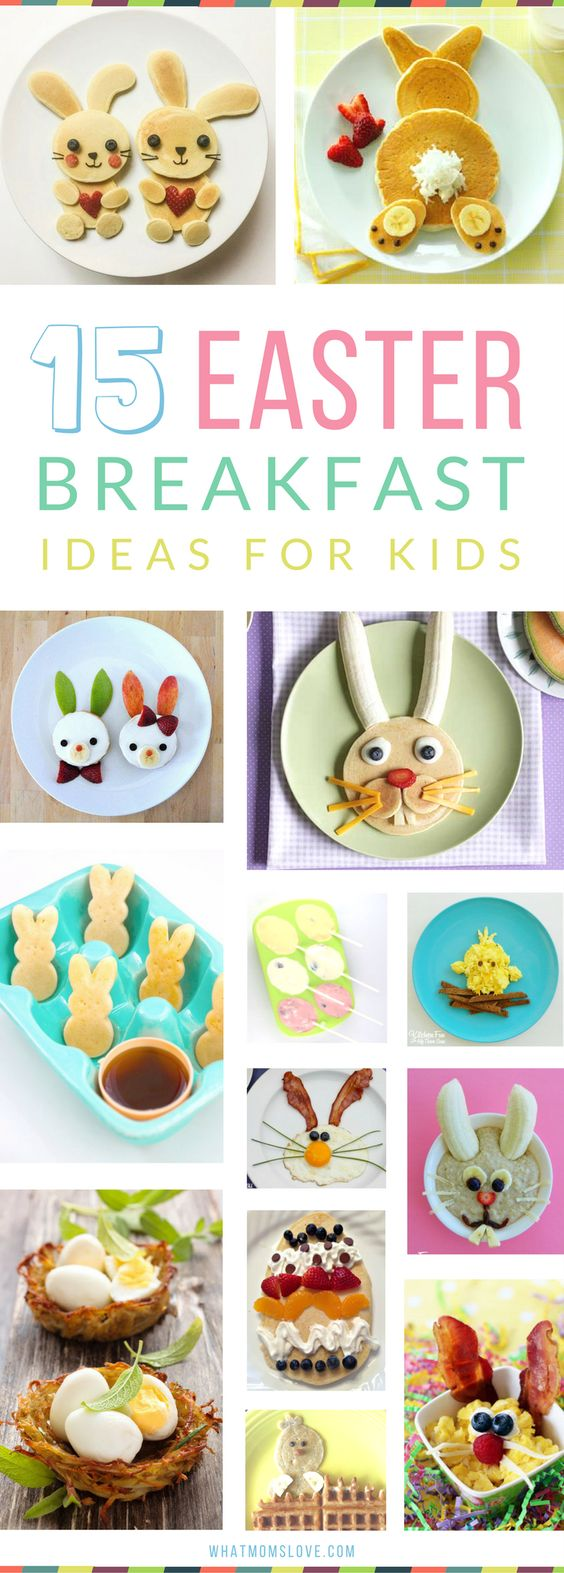 Easter Breakfast Ideas for Kids | Healthy, easy and fun recipes for you to make - also great for brunch! Plus creative food for lunch, snack and treats!: